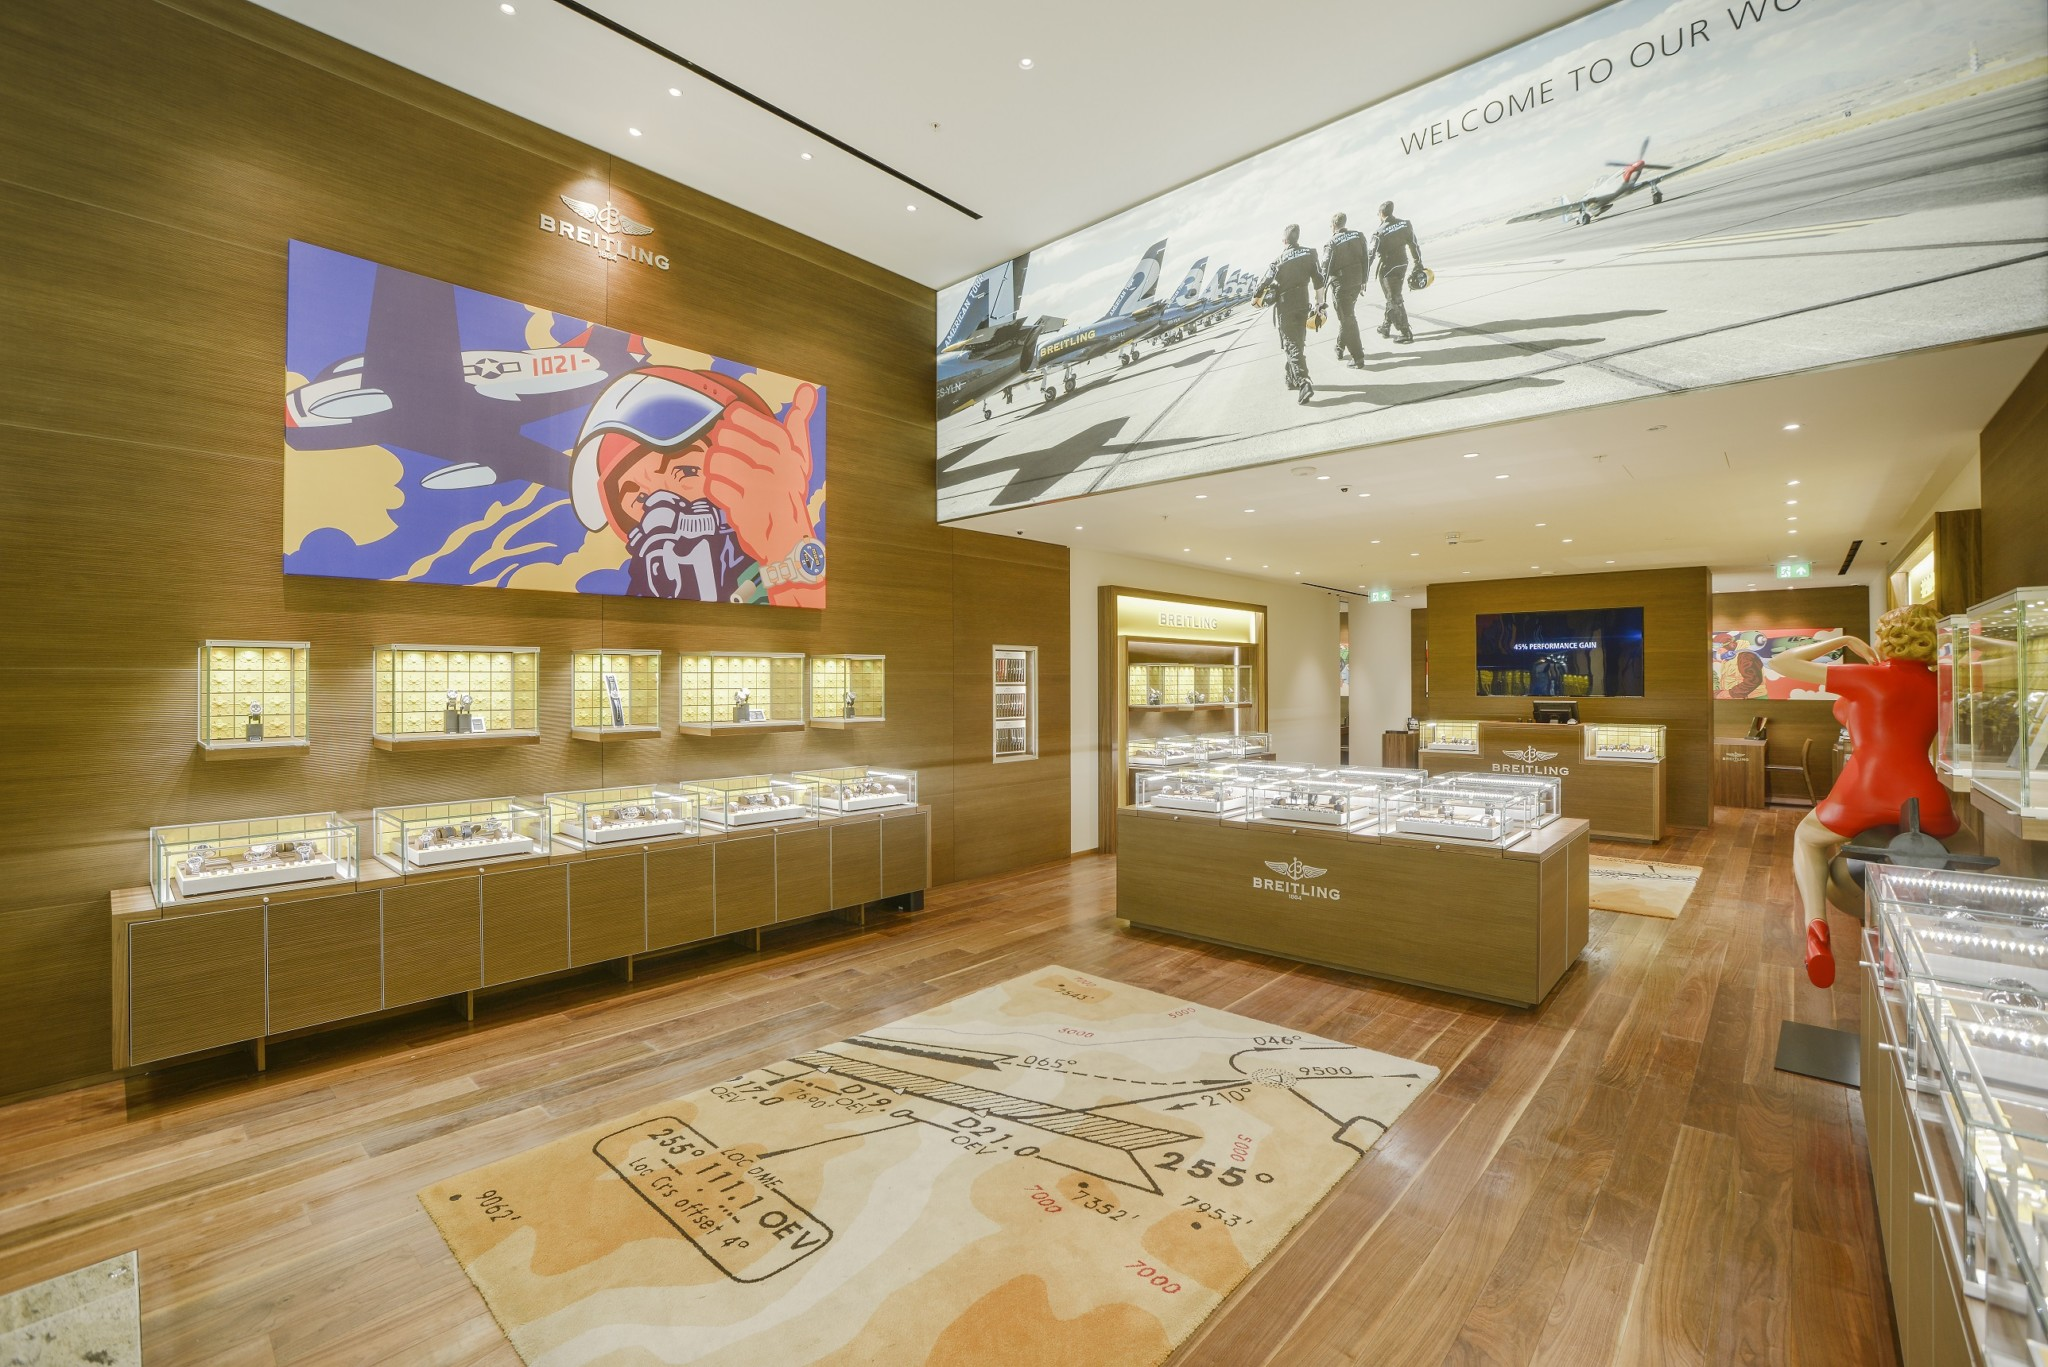 A second opening for Breitling inside Manchester's Trafford Centre quickly followed.